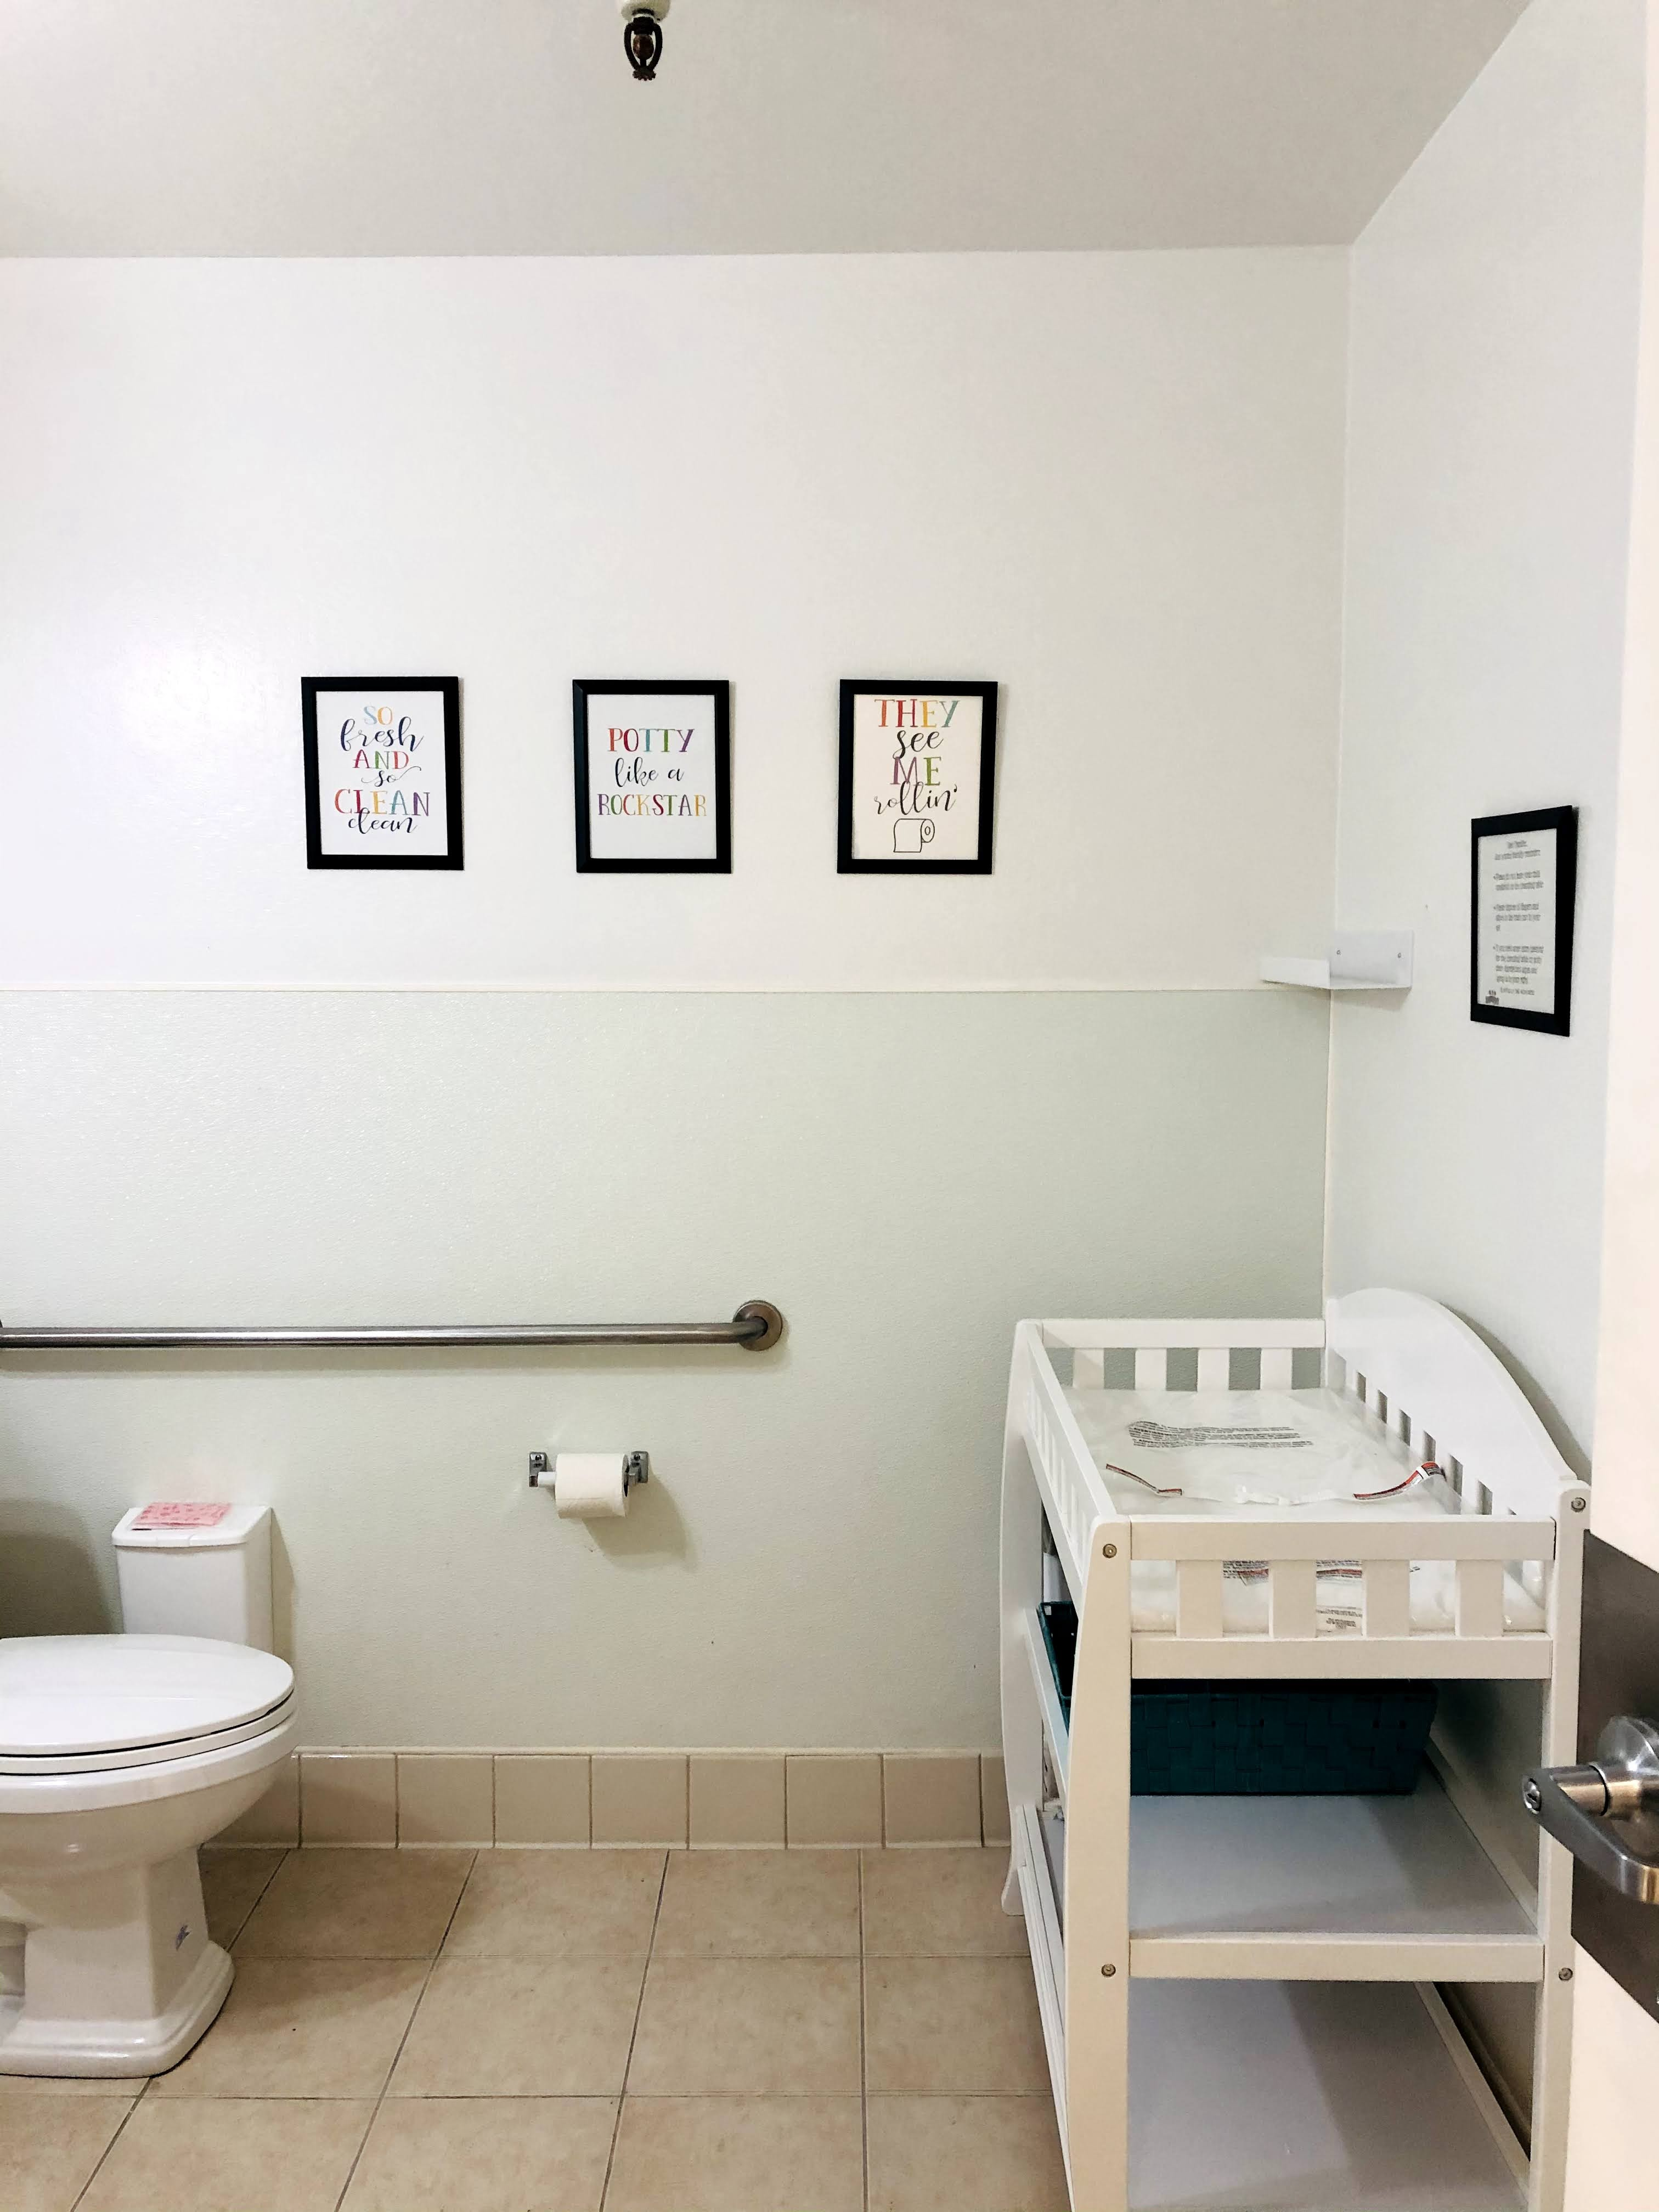 2 Family Style Bathrooms